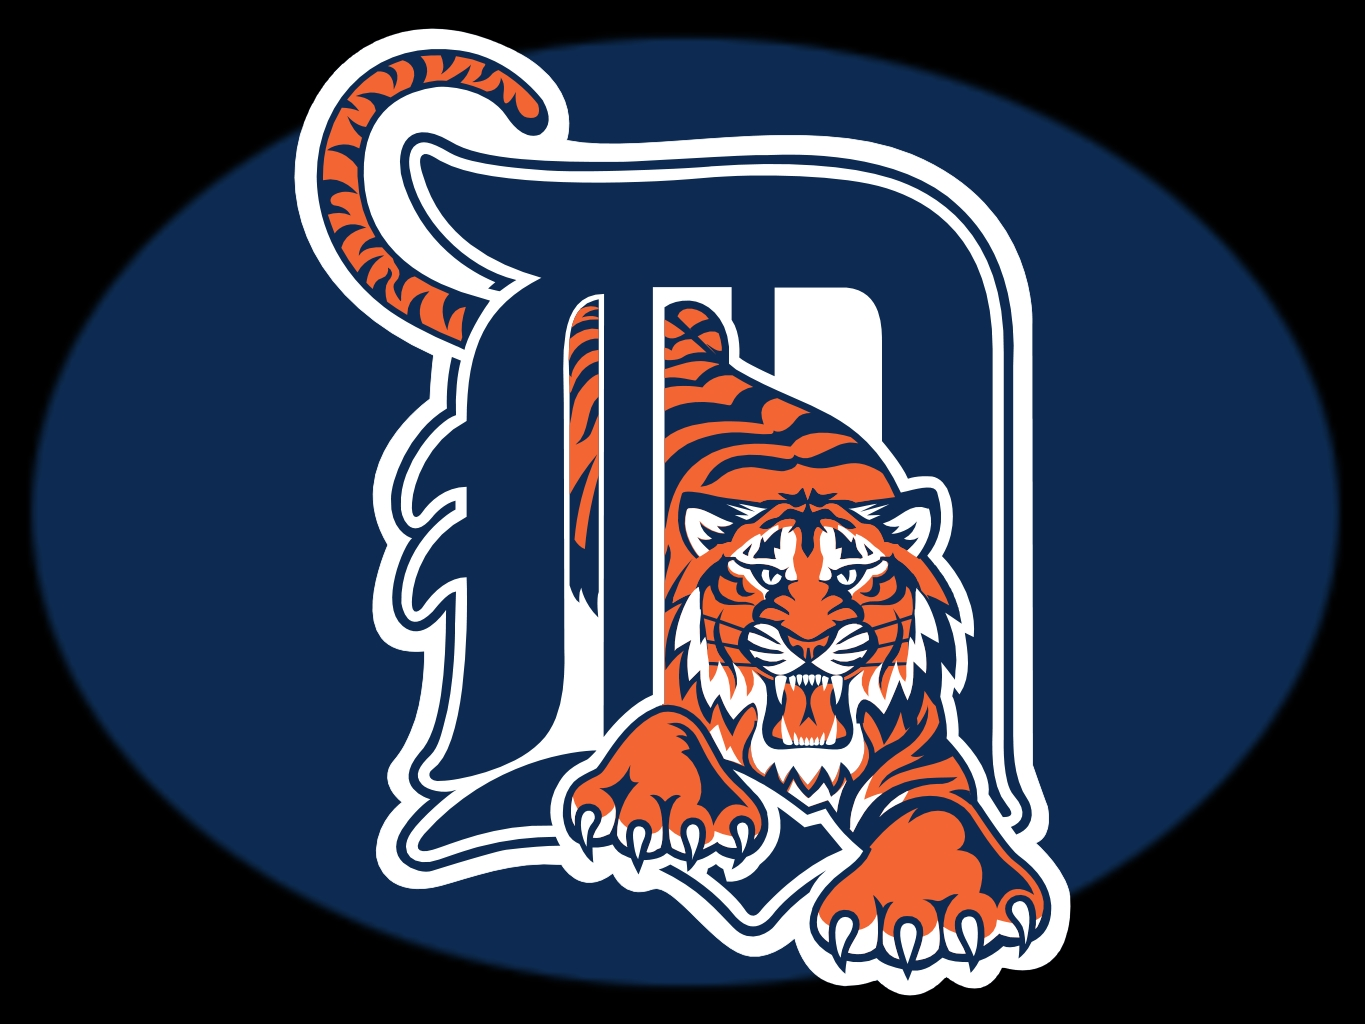 the tigers logo is really starting to bother me why red sox logo svg red sox logo png